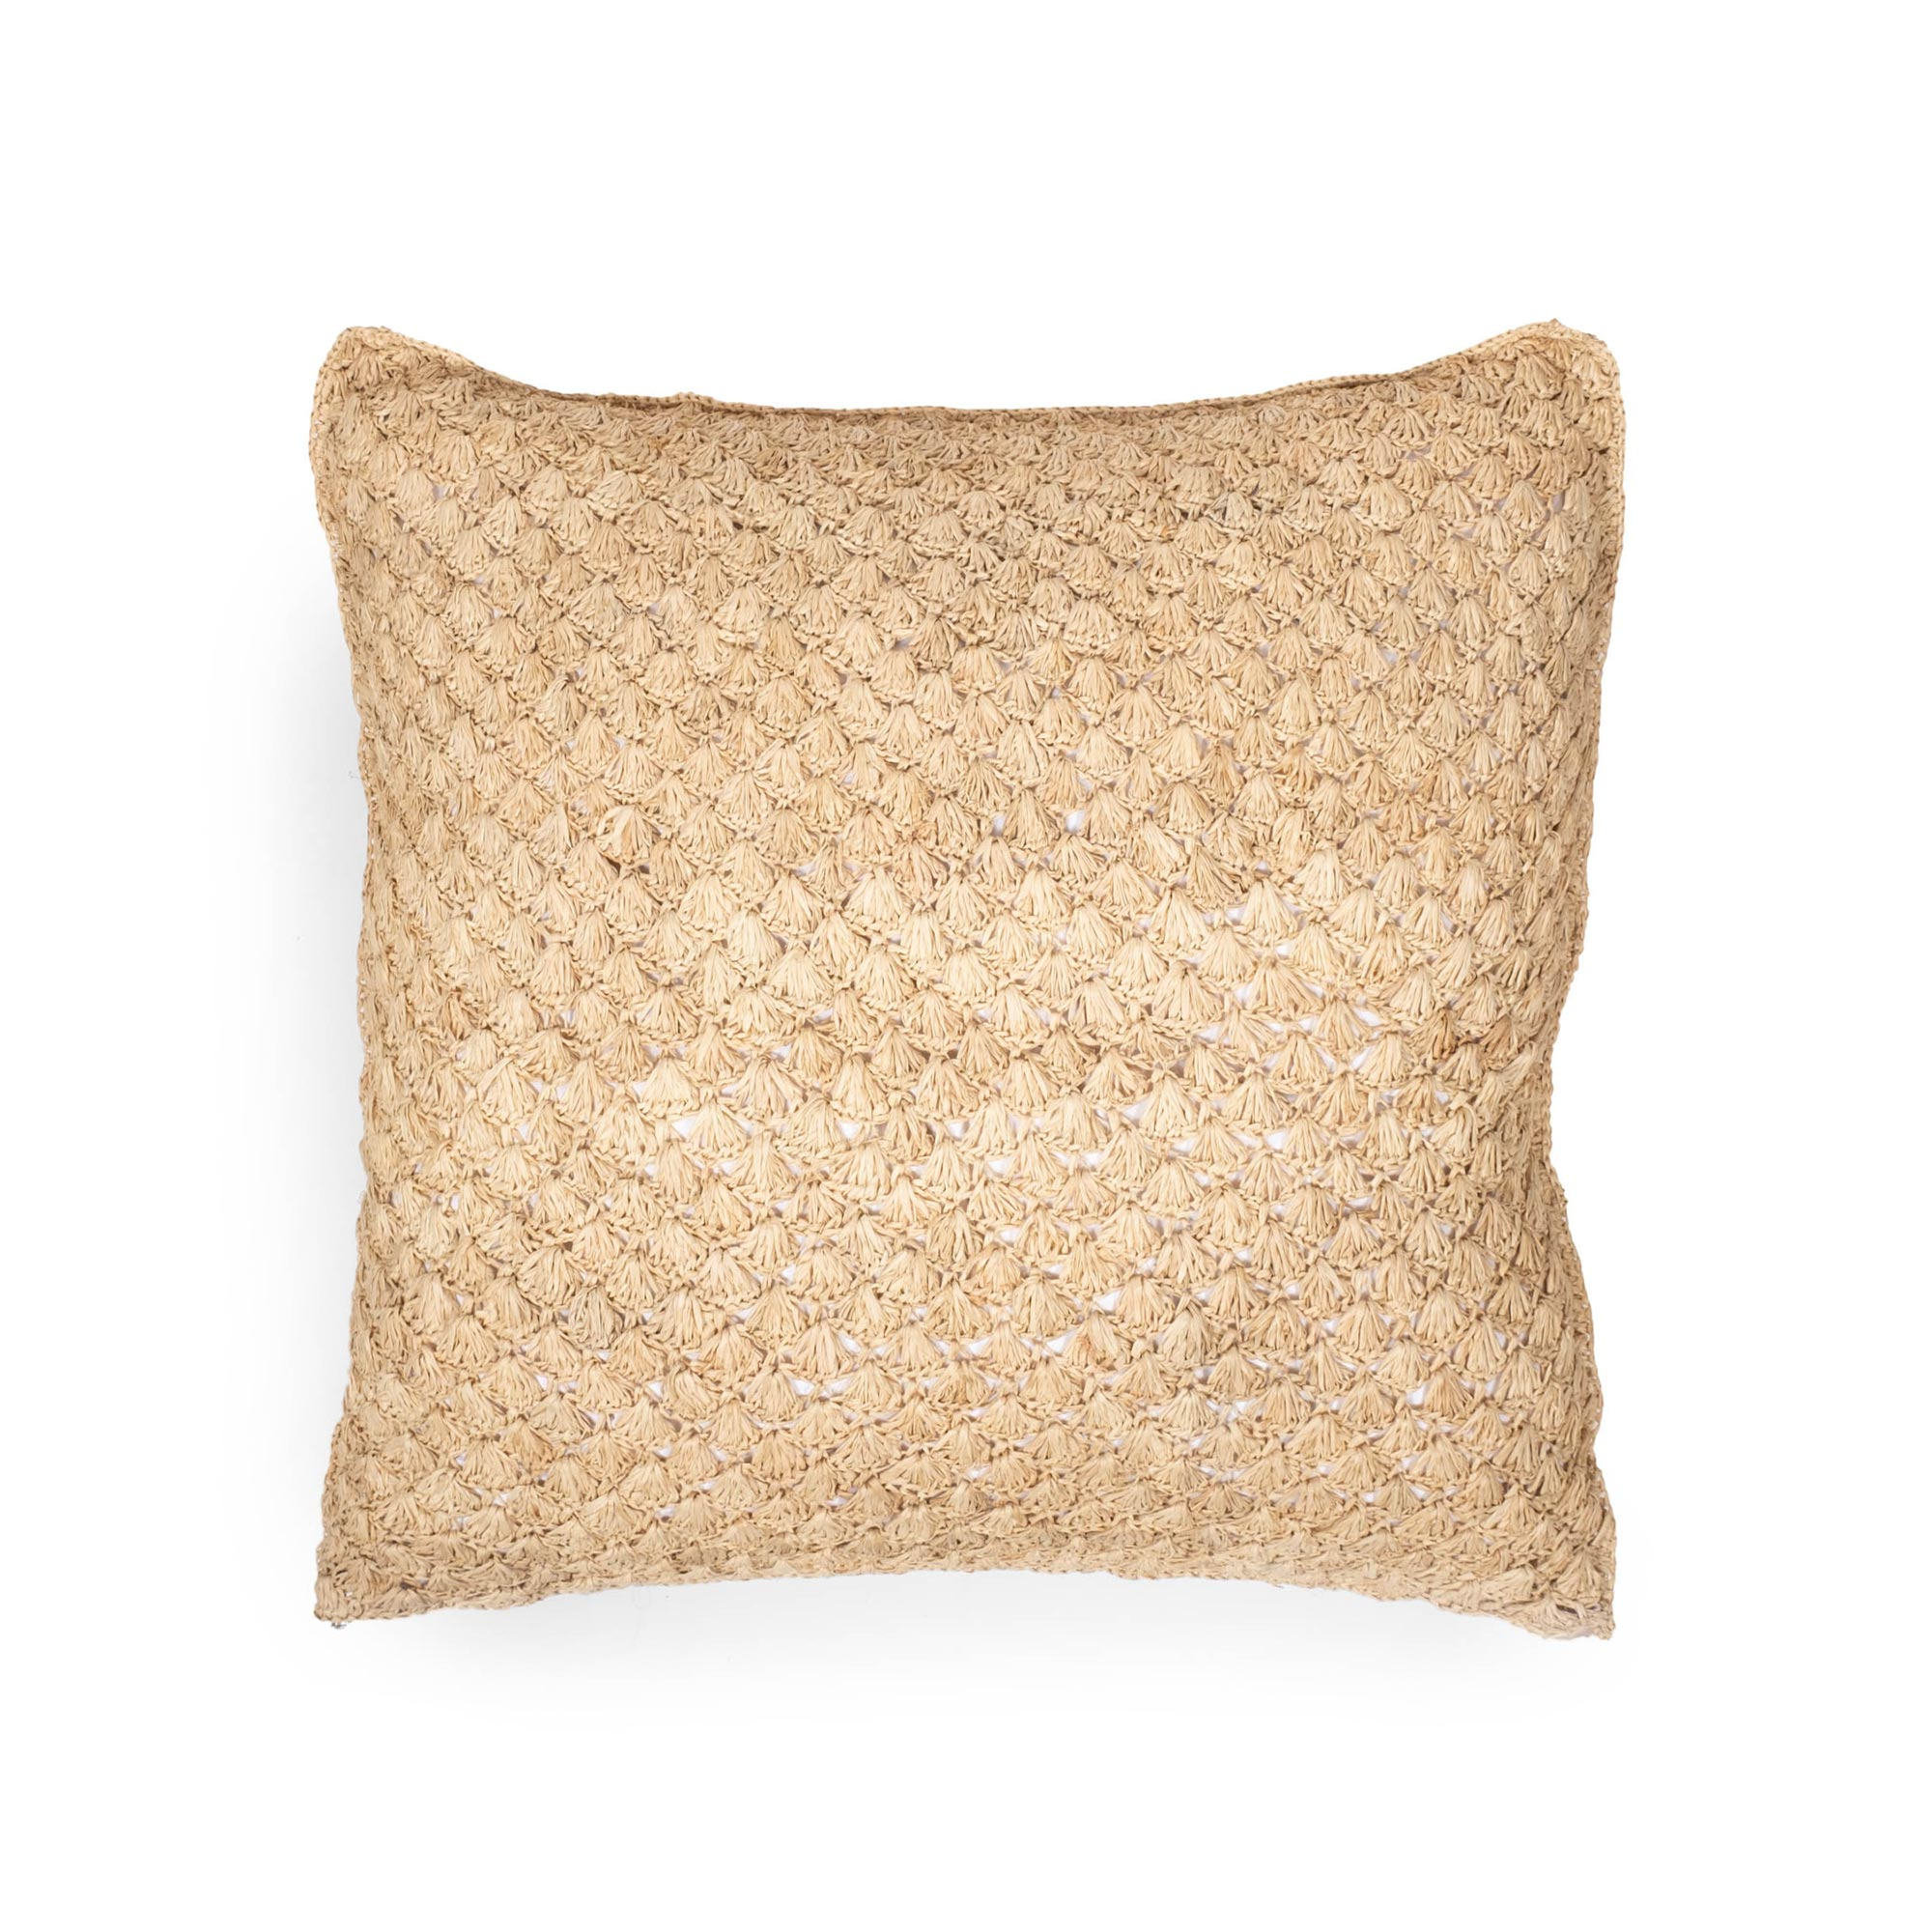 Raffia Pillow - Pineapple - Natural